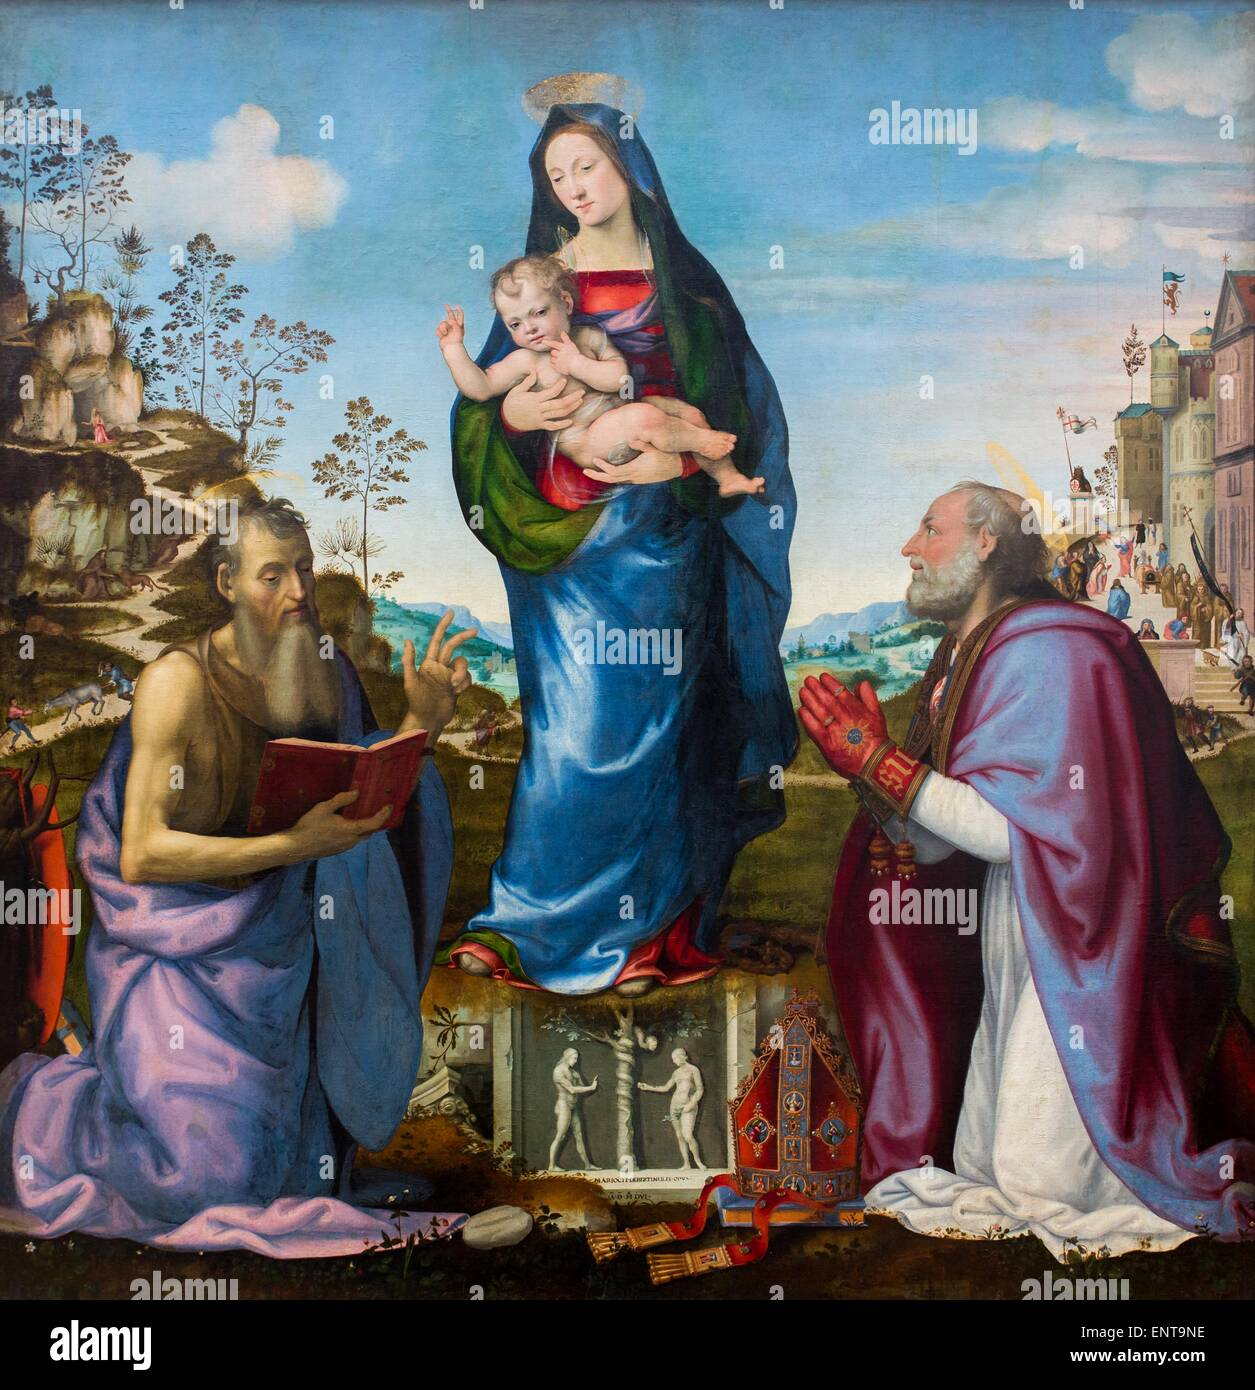 Virgin and Child surrounded by Saint Jerome and Saint Zenobius 26/09/2013 - 16th century Collection - Stock Image